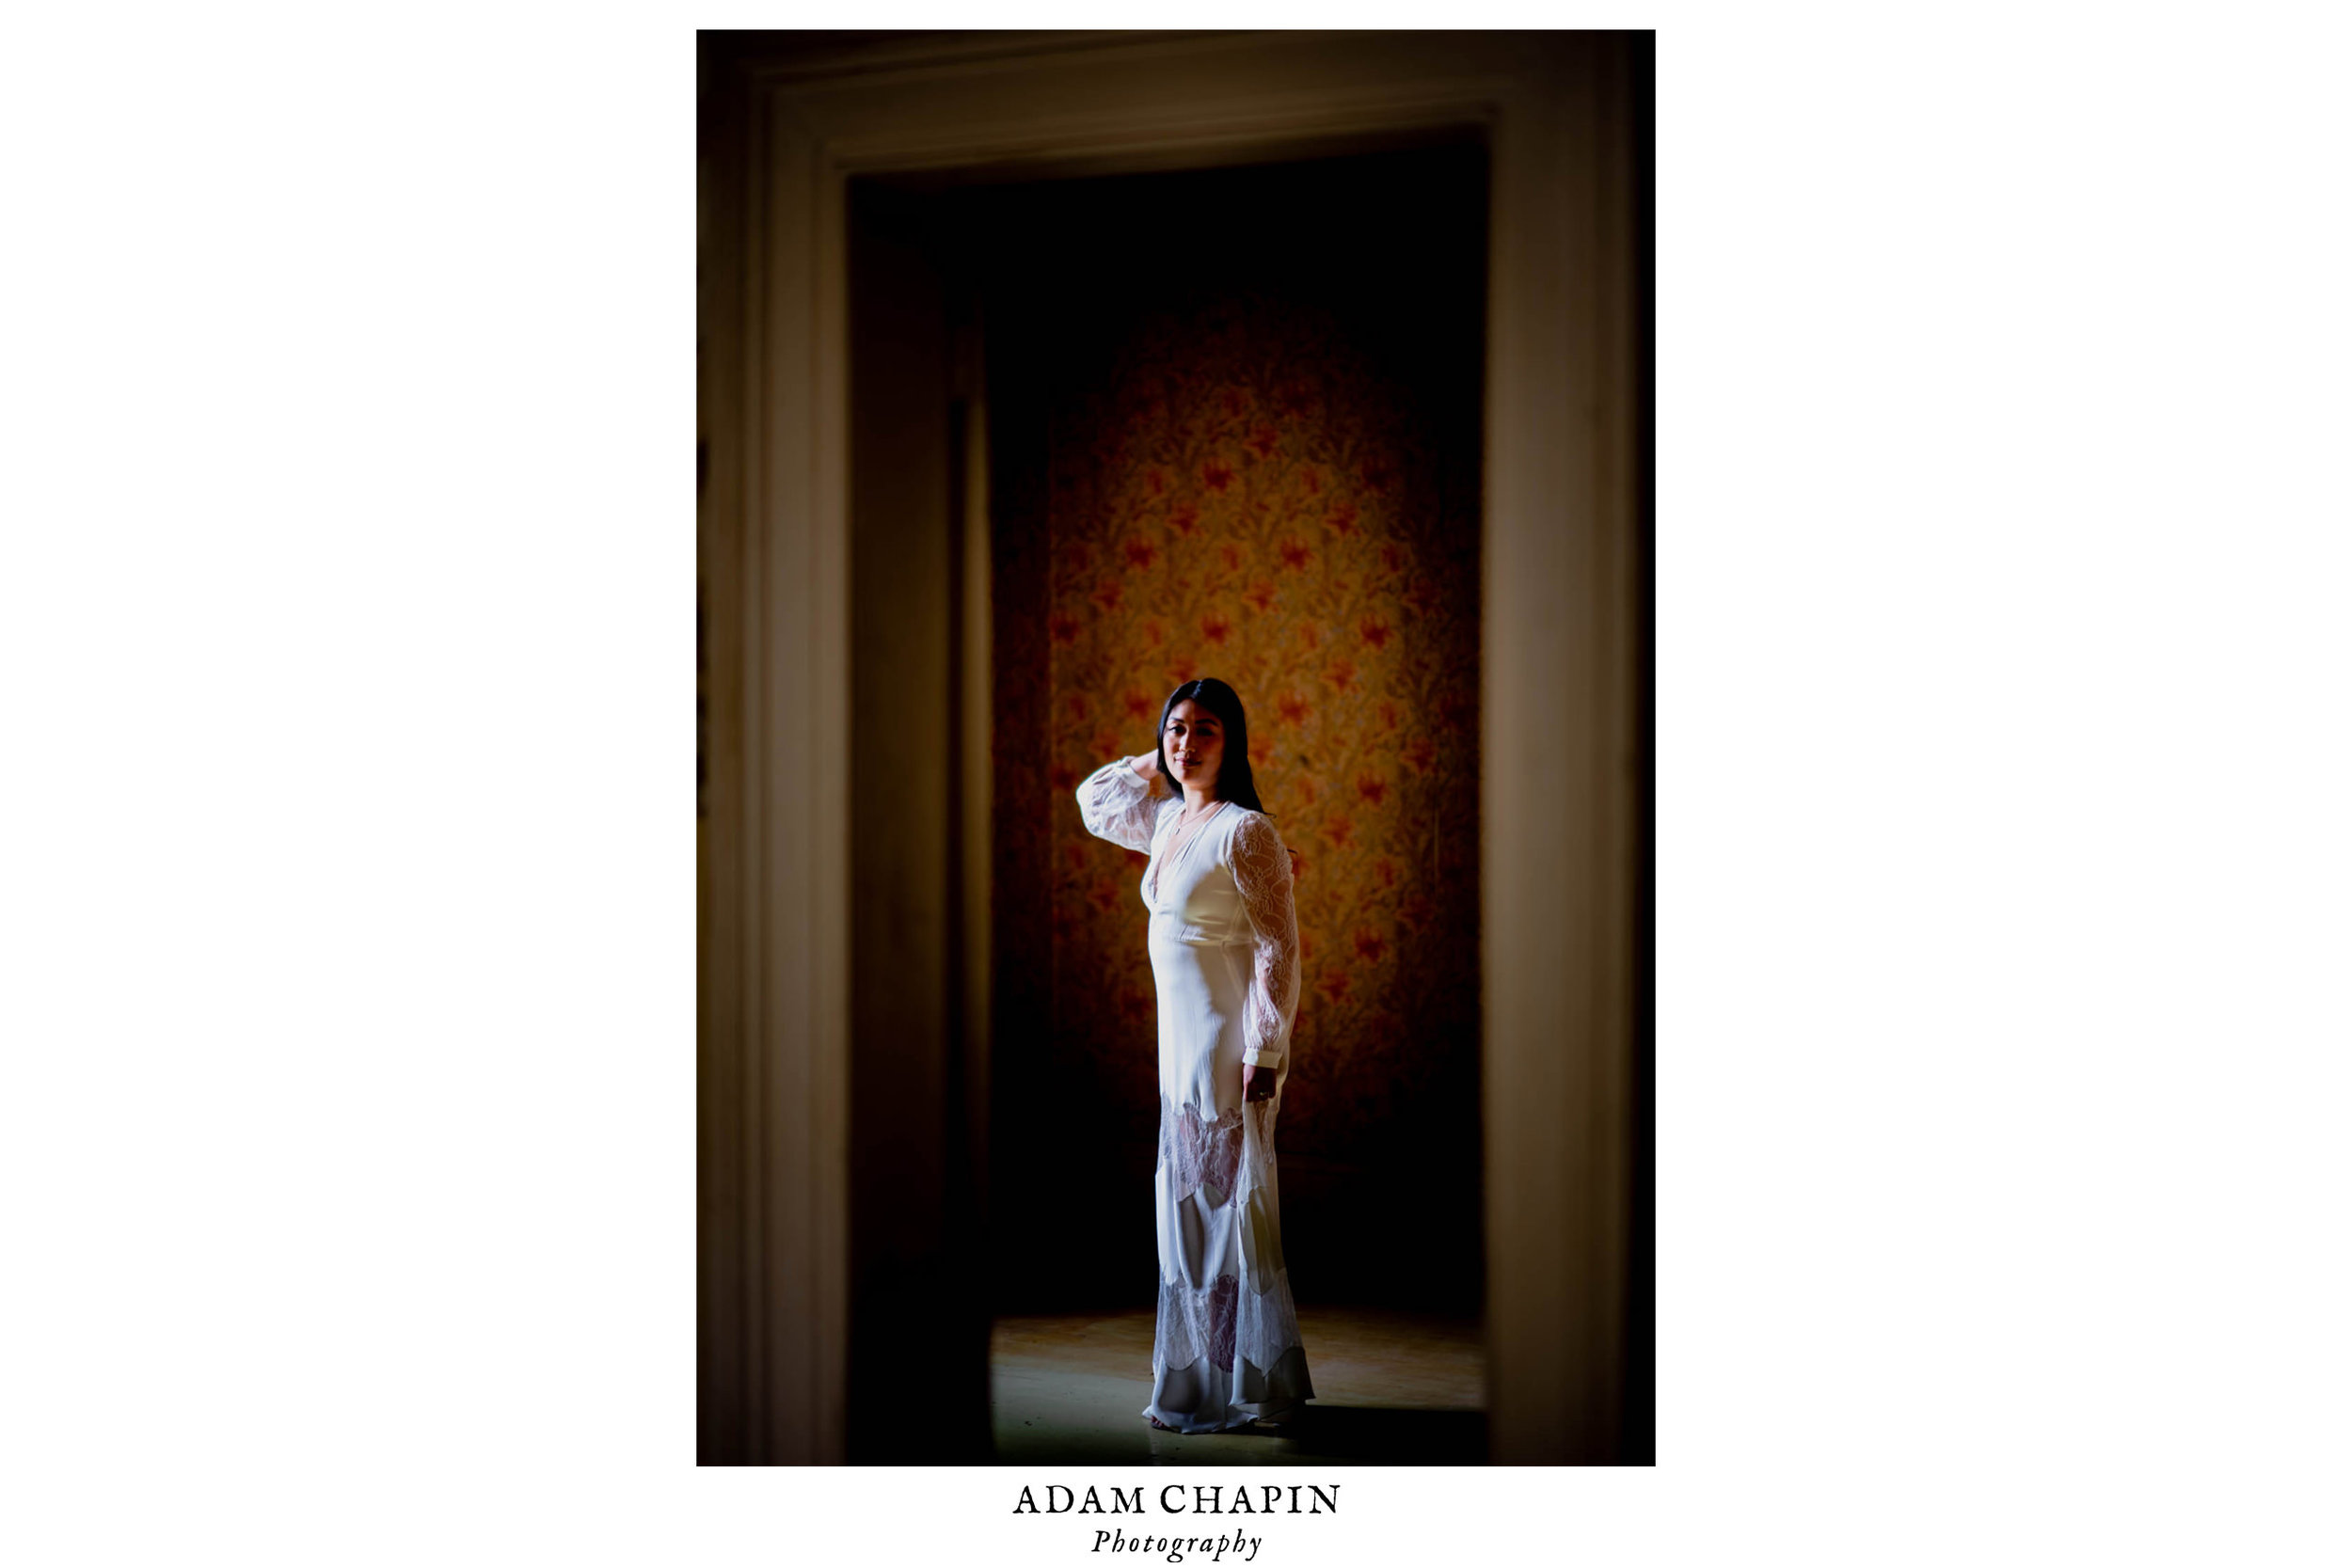 Bride framed by a doorway as she stands in an empty room with ornate wallpaper behind her